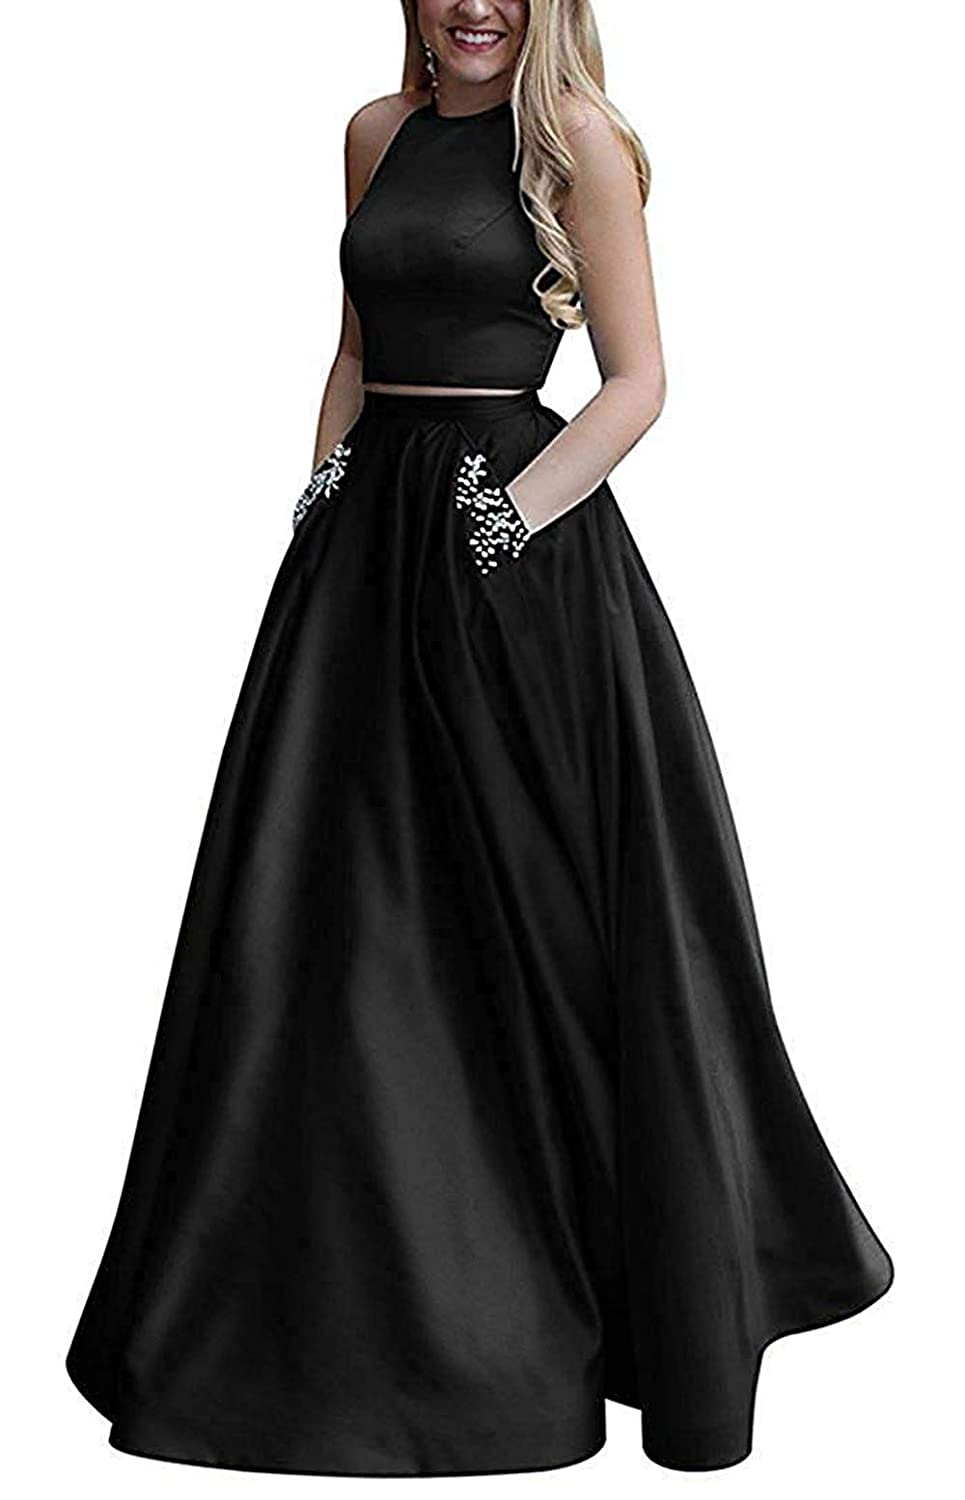 Black FTBY Two Piece Prom Dresses with Pockets 2019 Beaded Long Satin Open Back Evening Dress Womens Formal Gowns